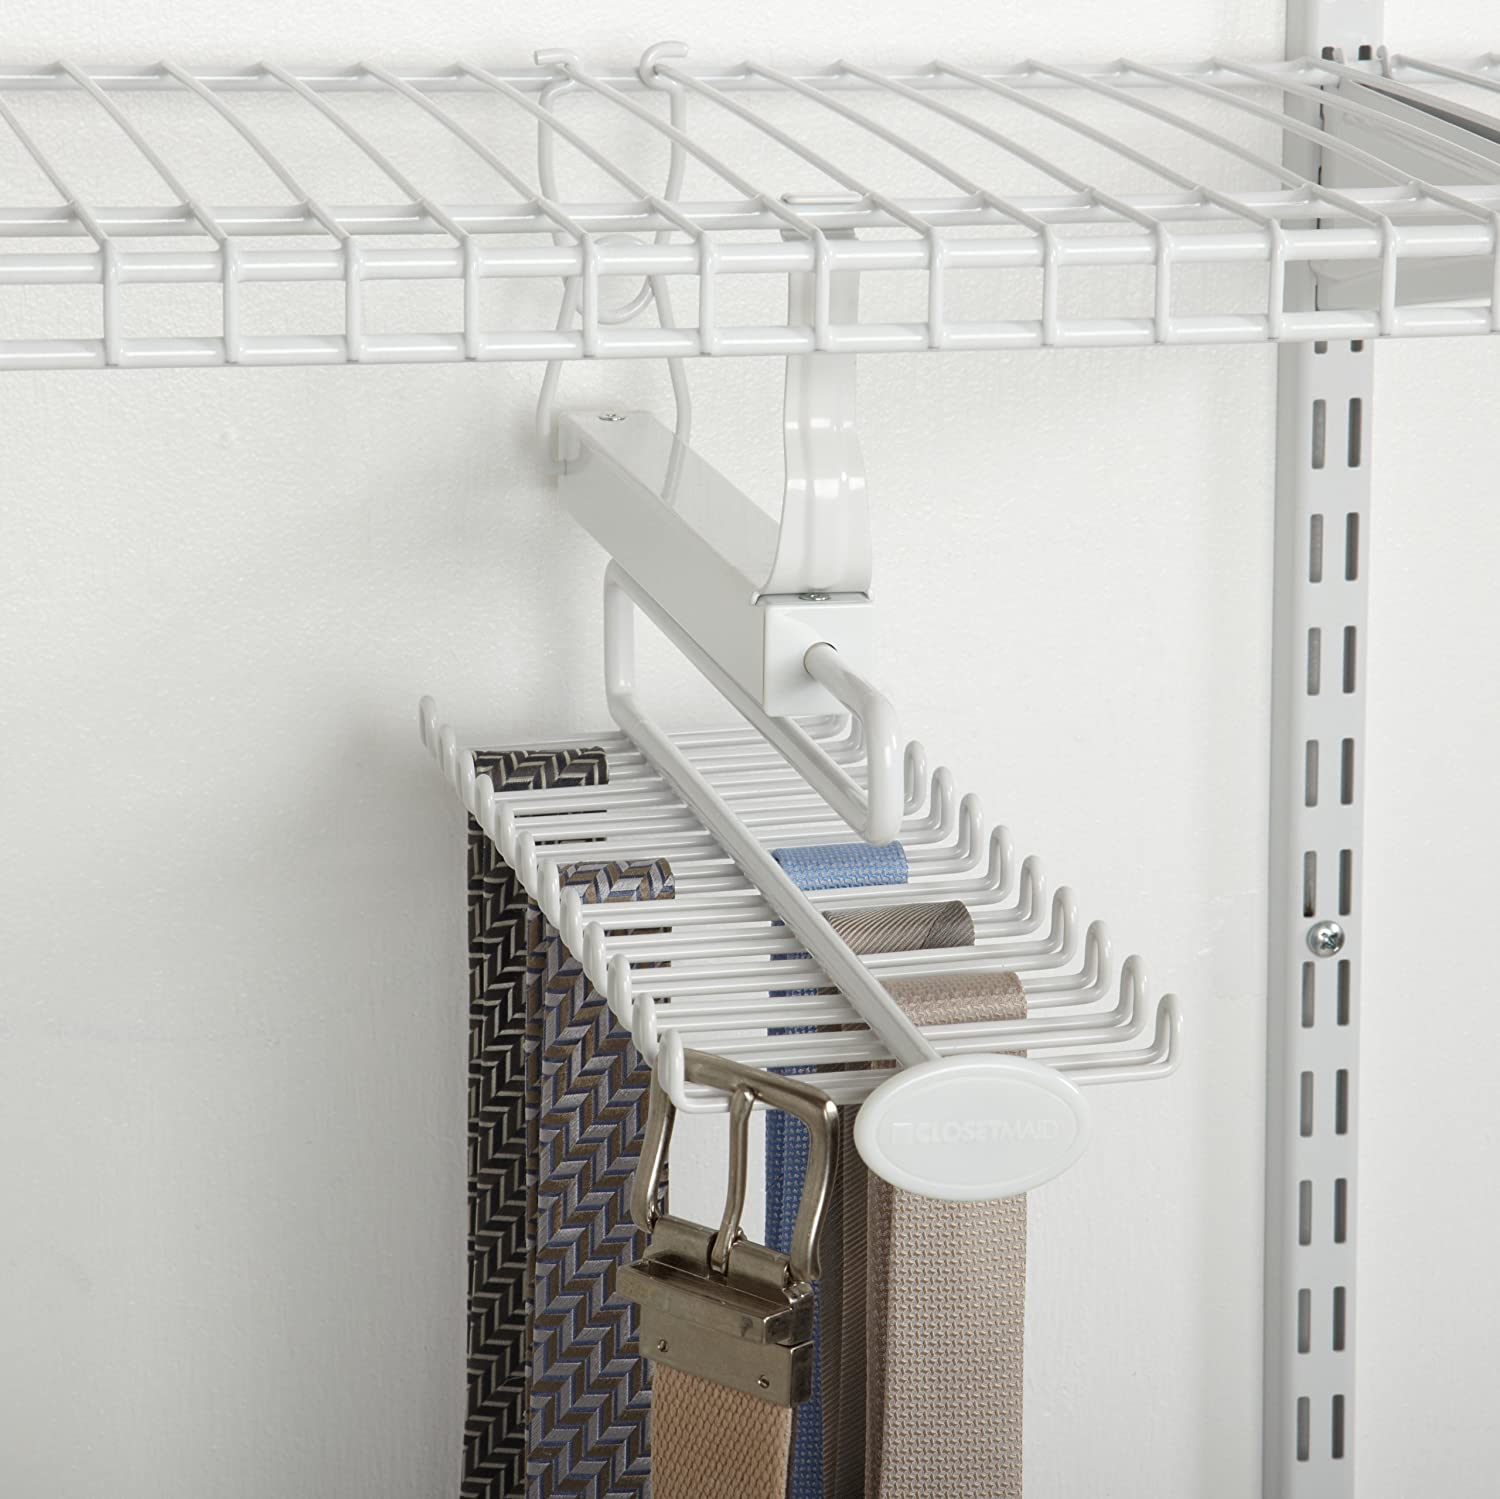 Amazon.com: ClosetMaid 8060 Sliding Tie U0026 Belt Rack For Wire Shelving,  White: Home U0026 Kitchen